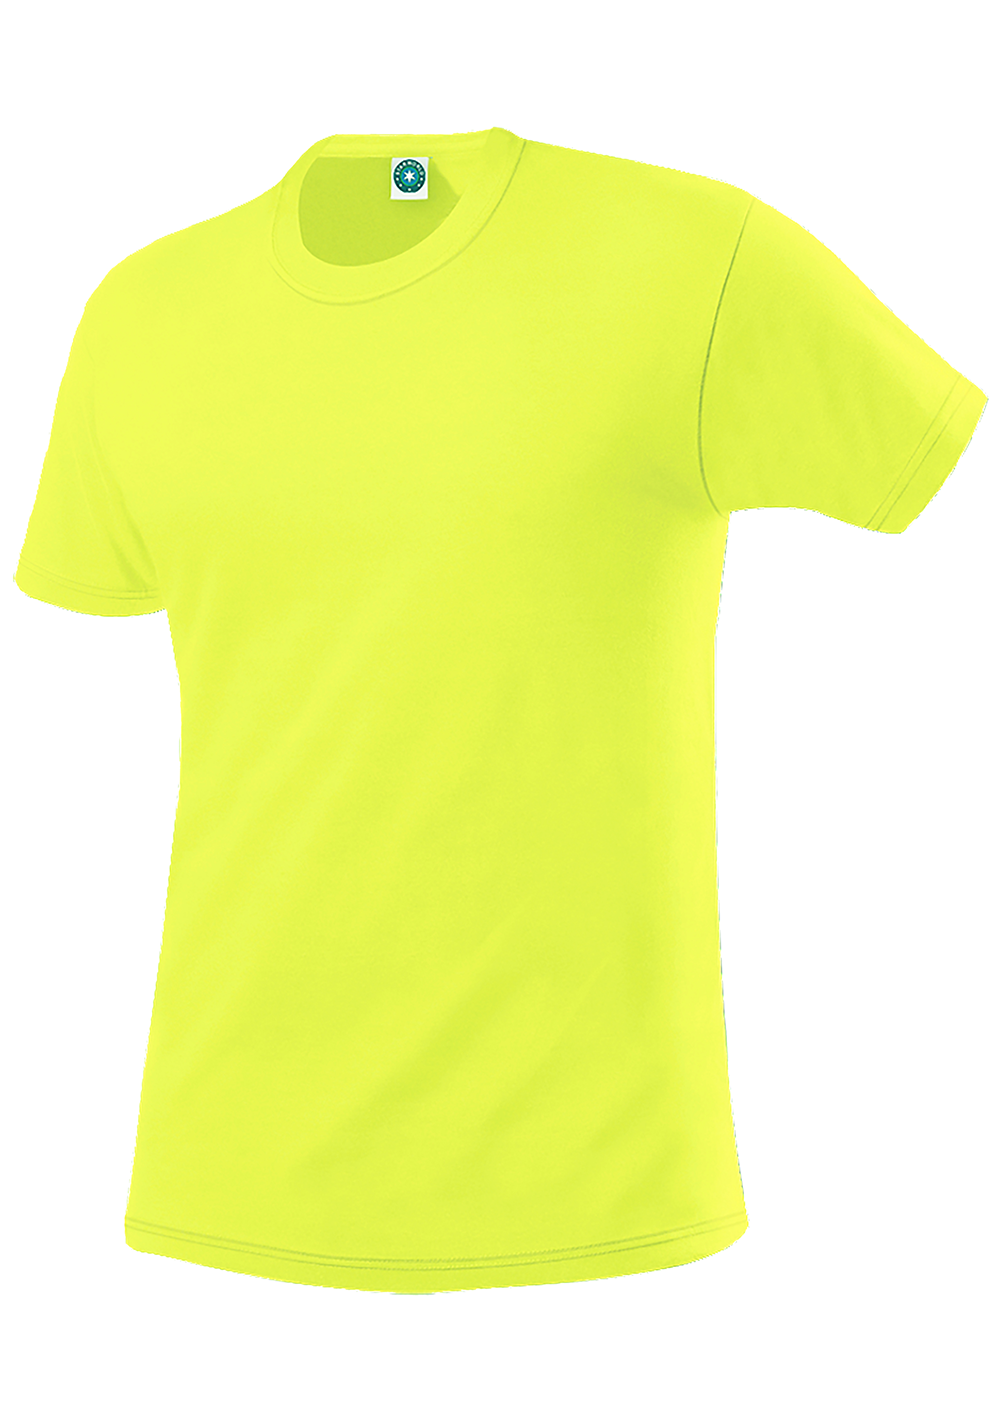 SW304-64-FlYellow.png